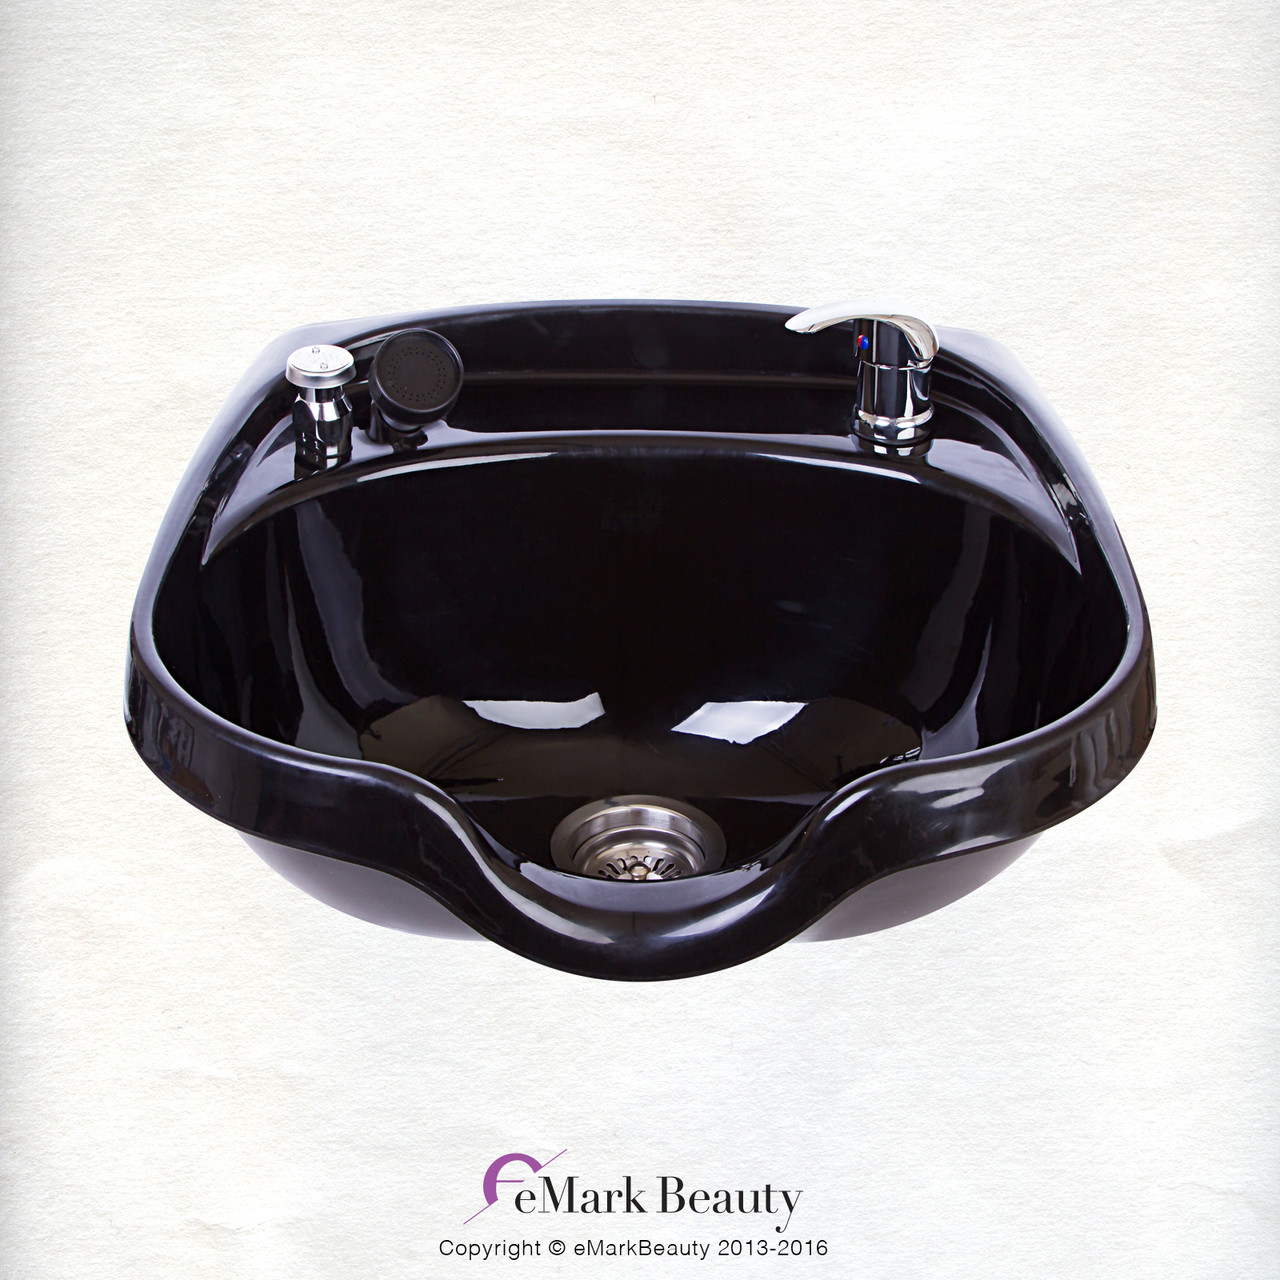 Shampoo Bowls, Sink & Salon Spa Equipment | eMark Beauty